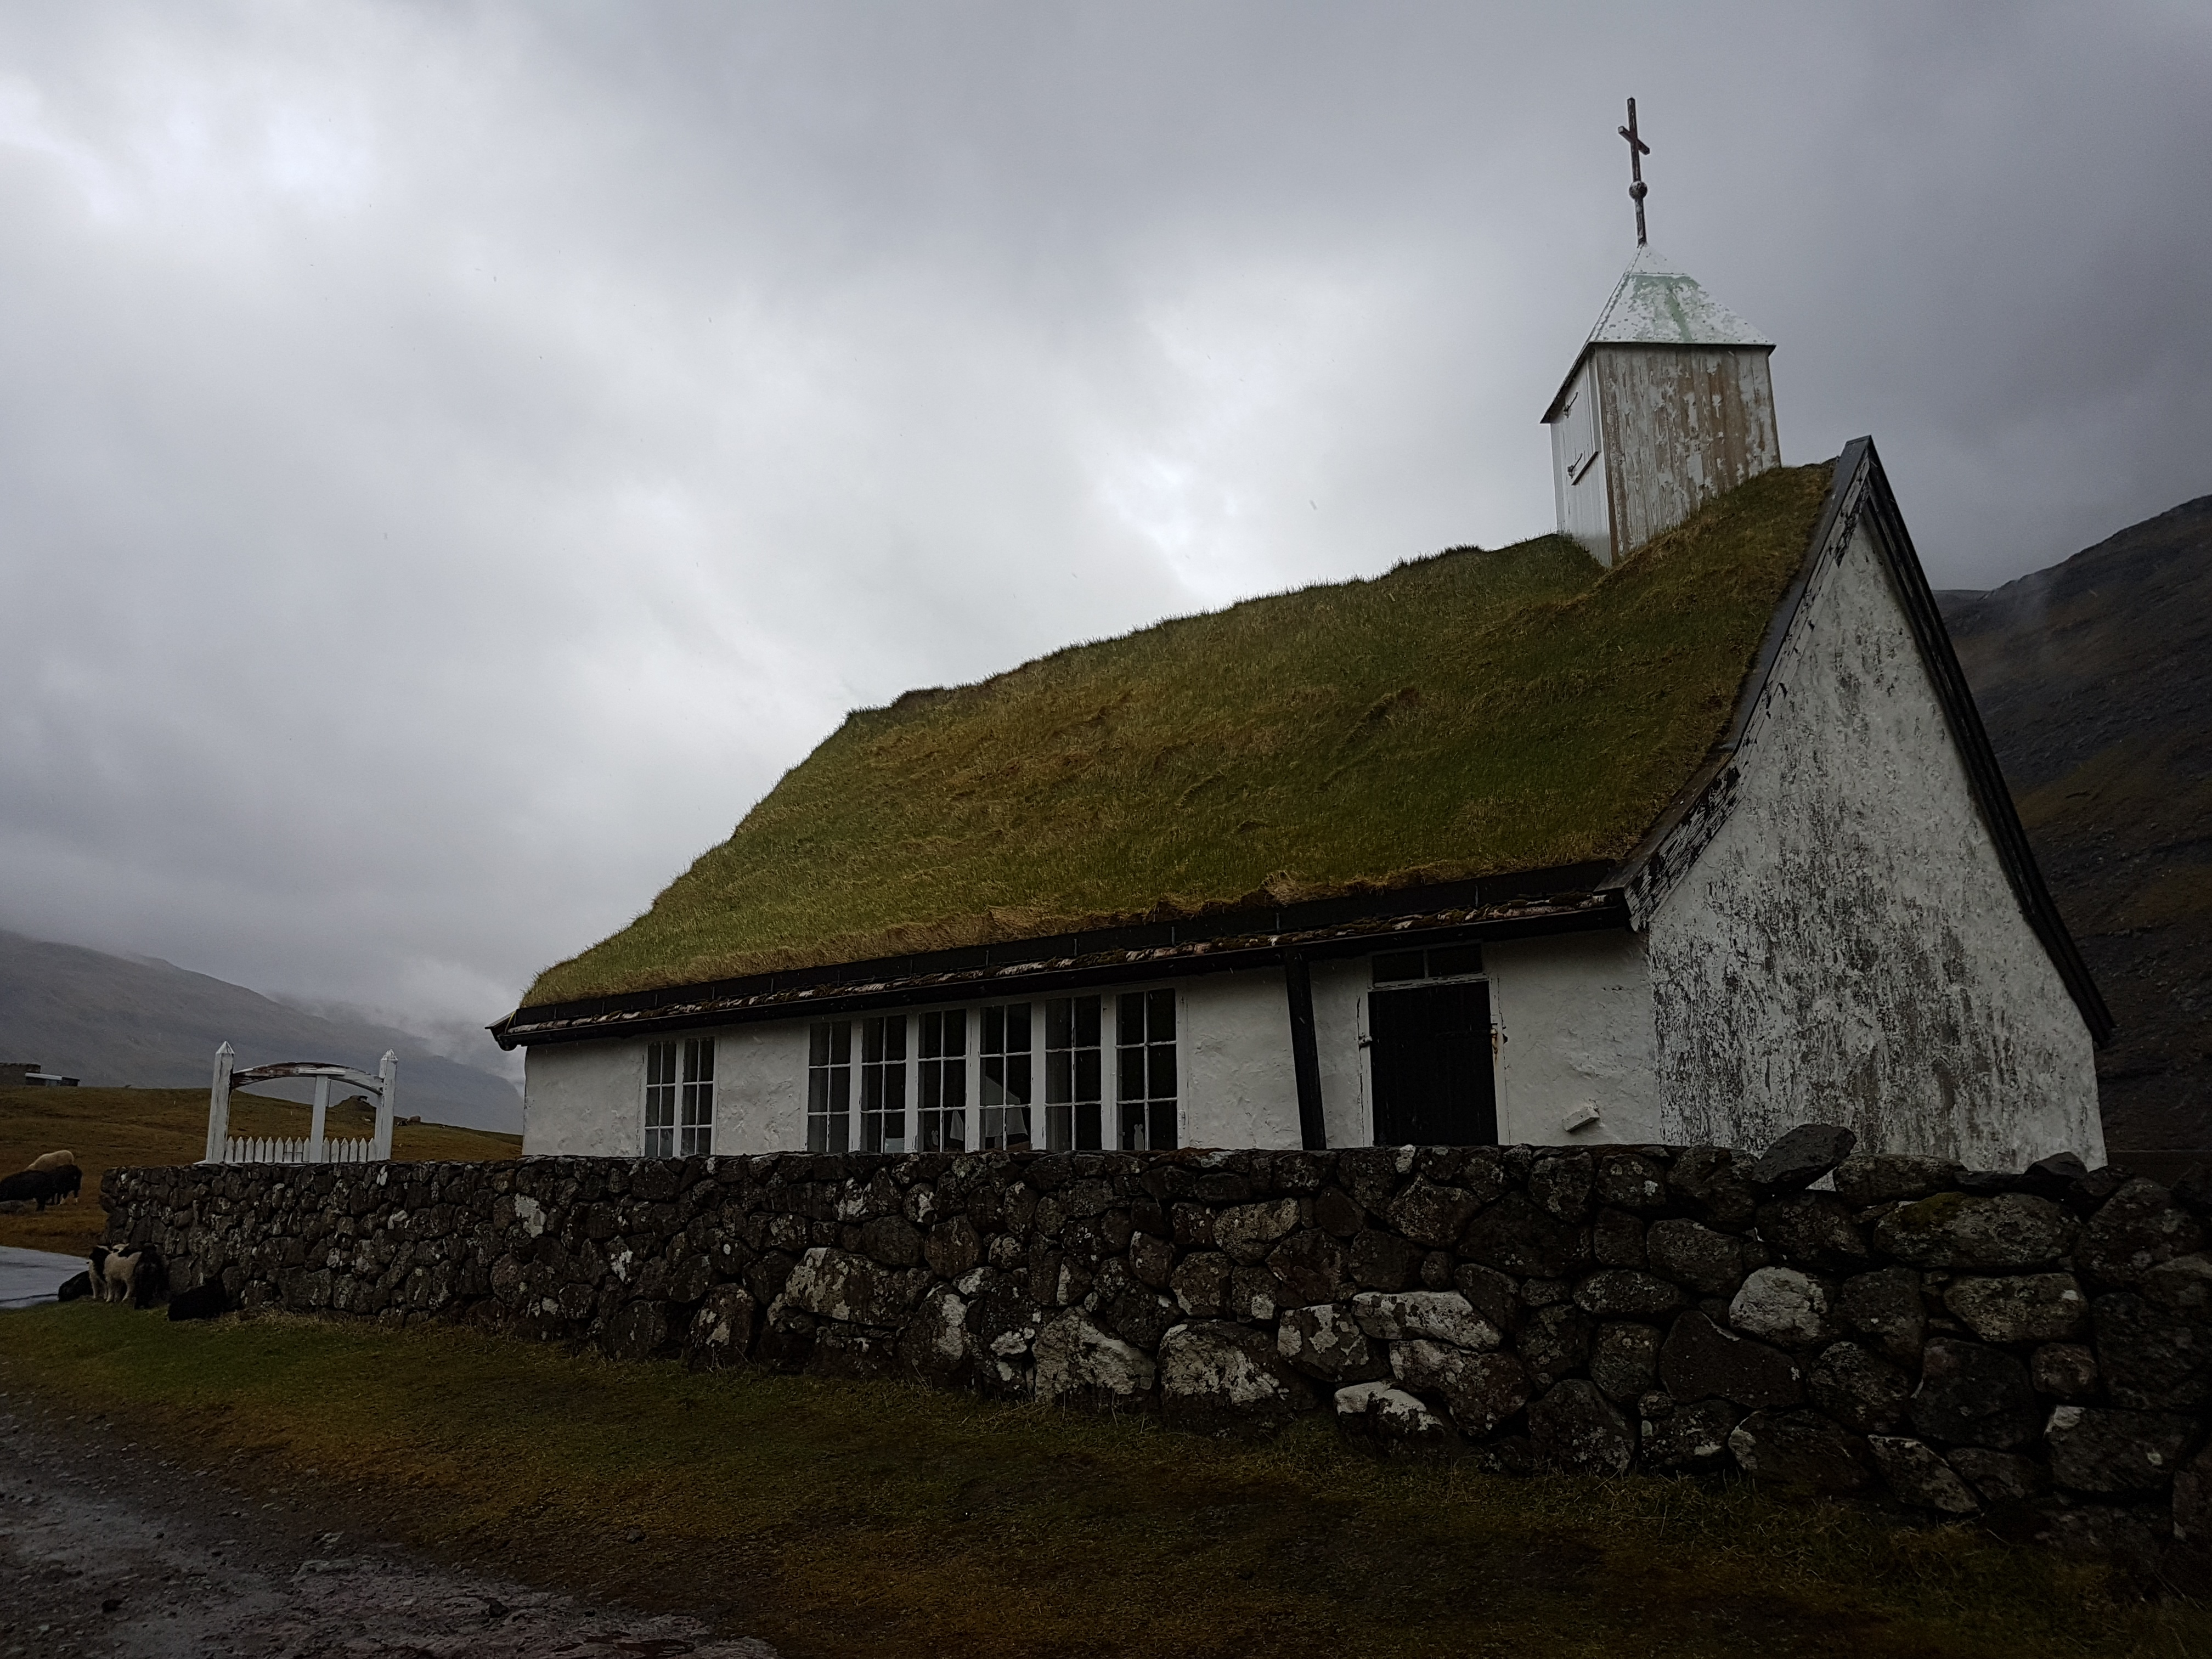 The small church in the village of Saksun